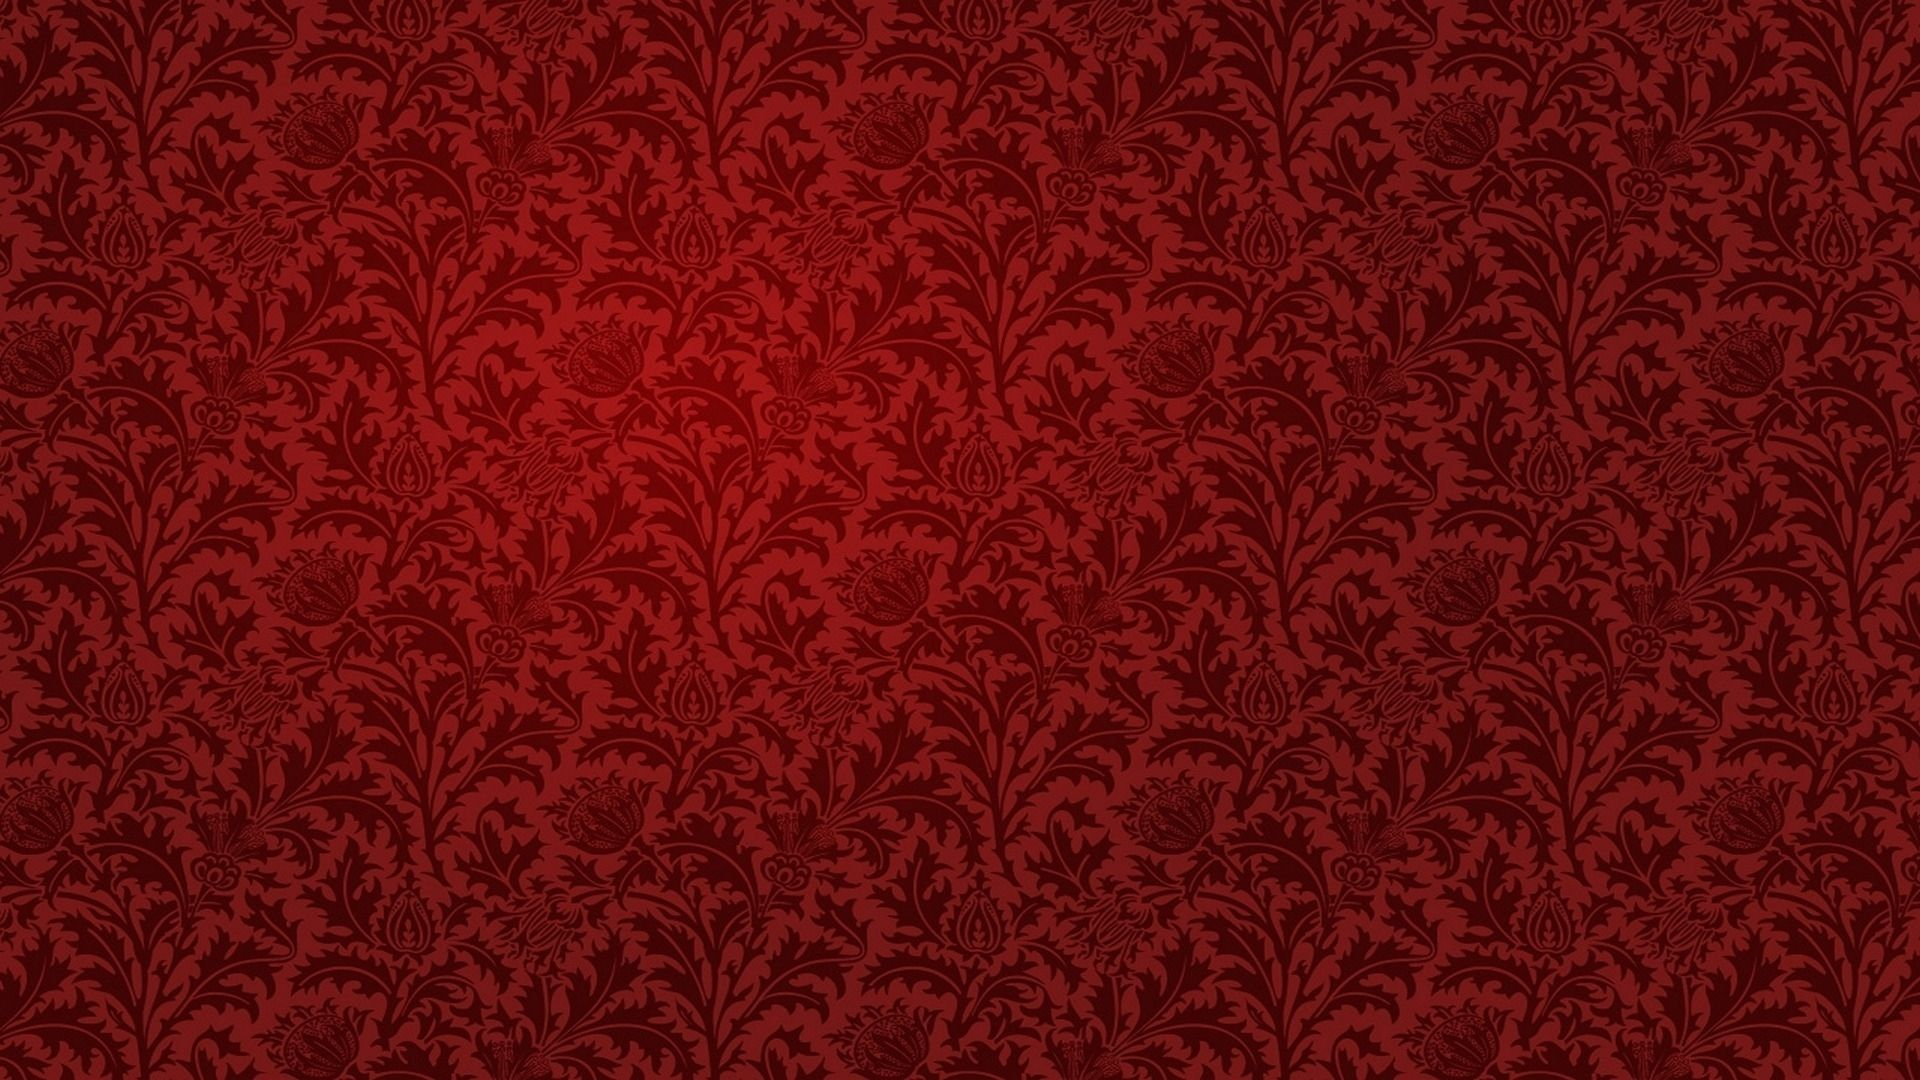 The Magic Of The Internet Red And Gold Wallpaper Red Wallpaper Vintage Desktop Wallpapers